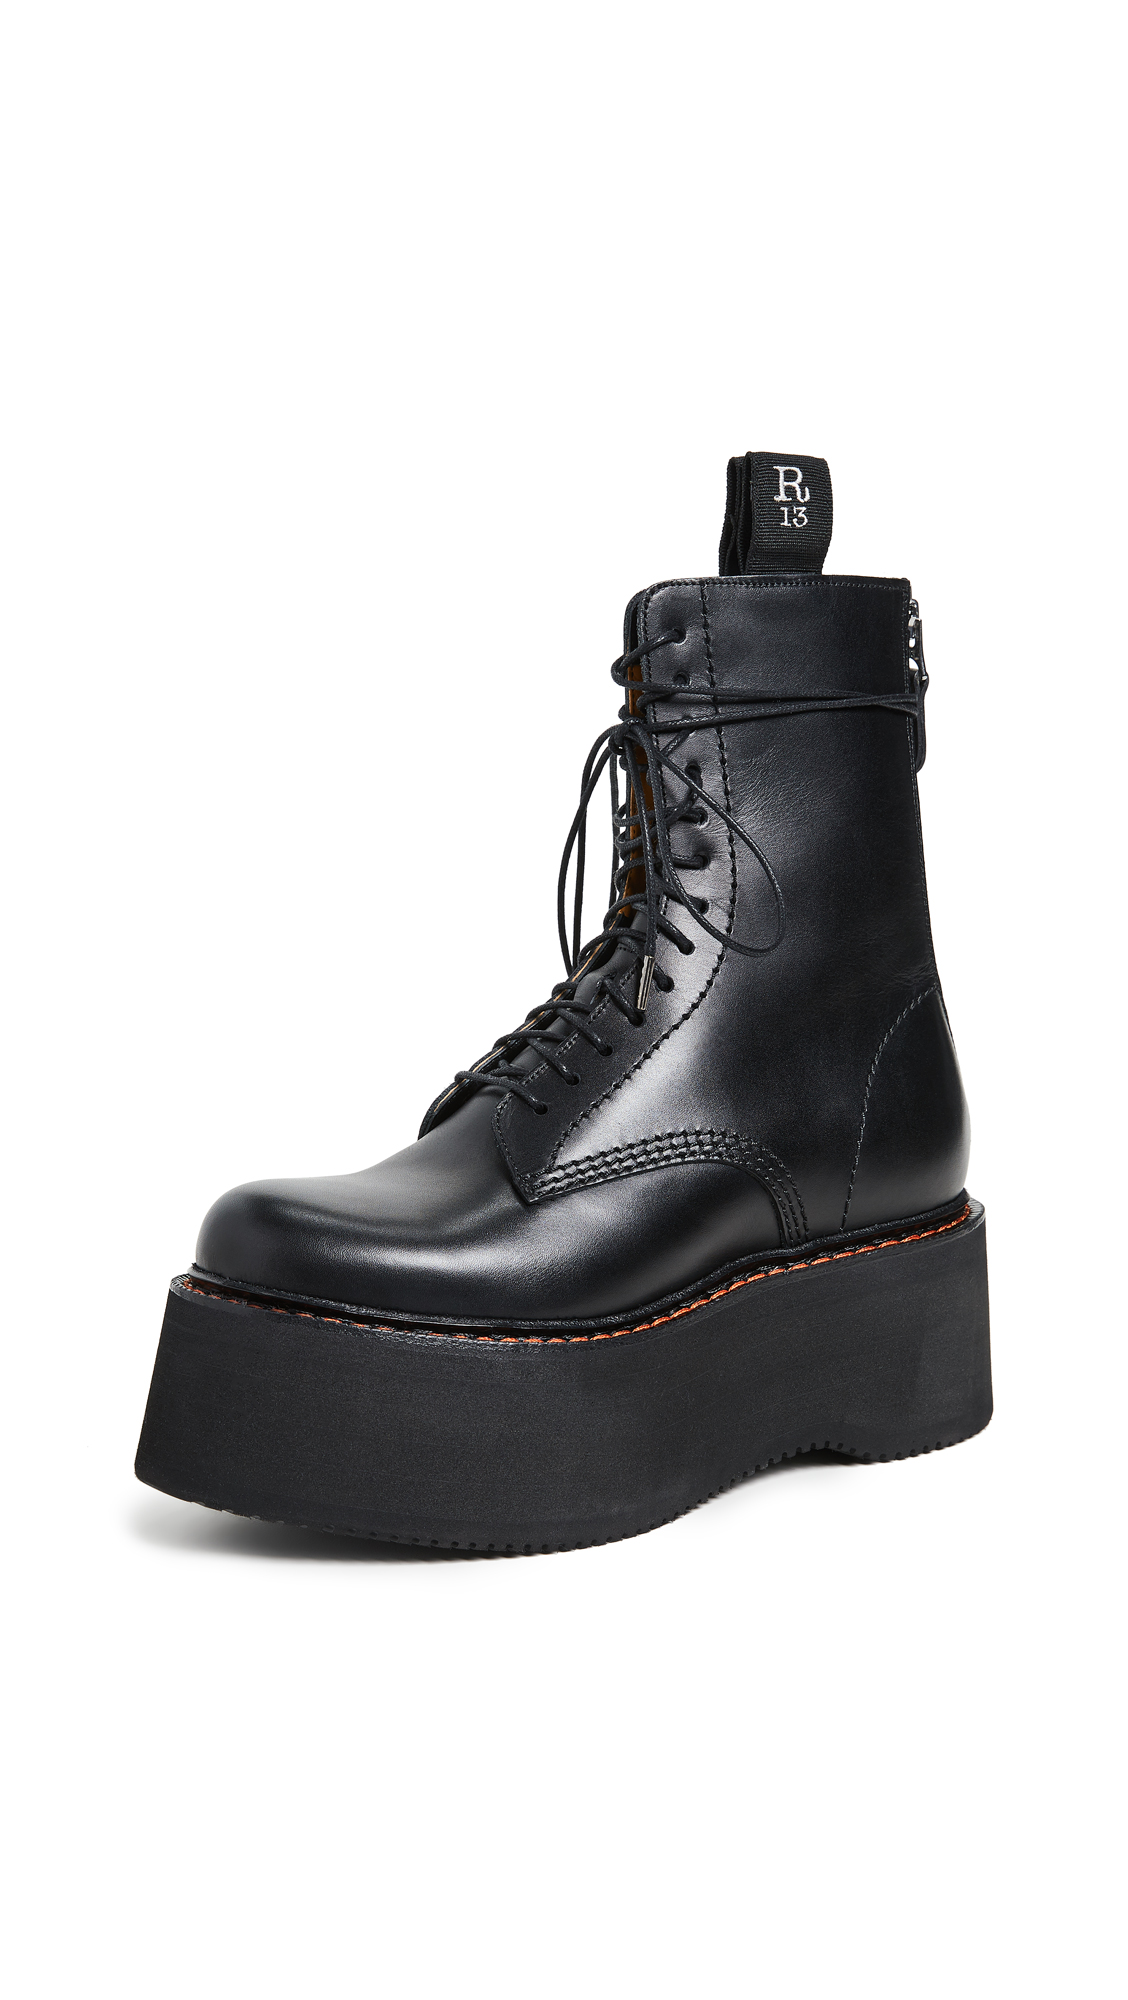 R13 Combat Stack Boots - Black